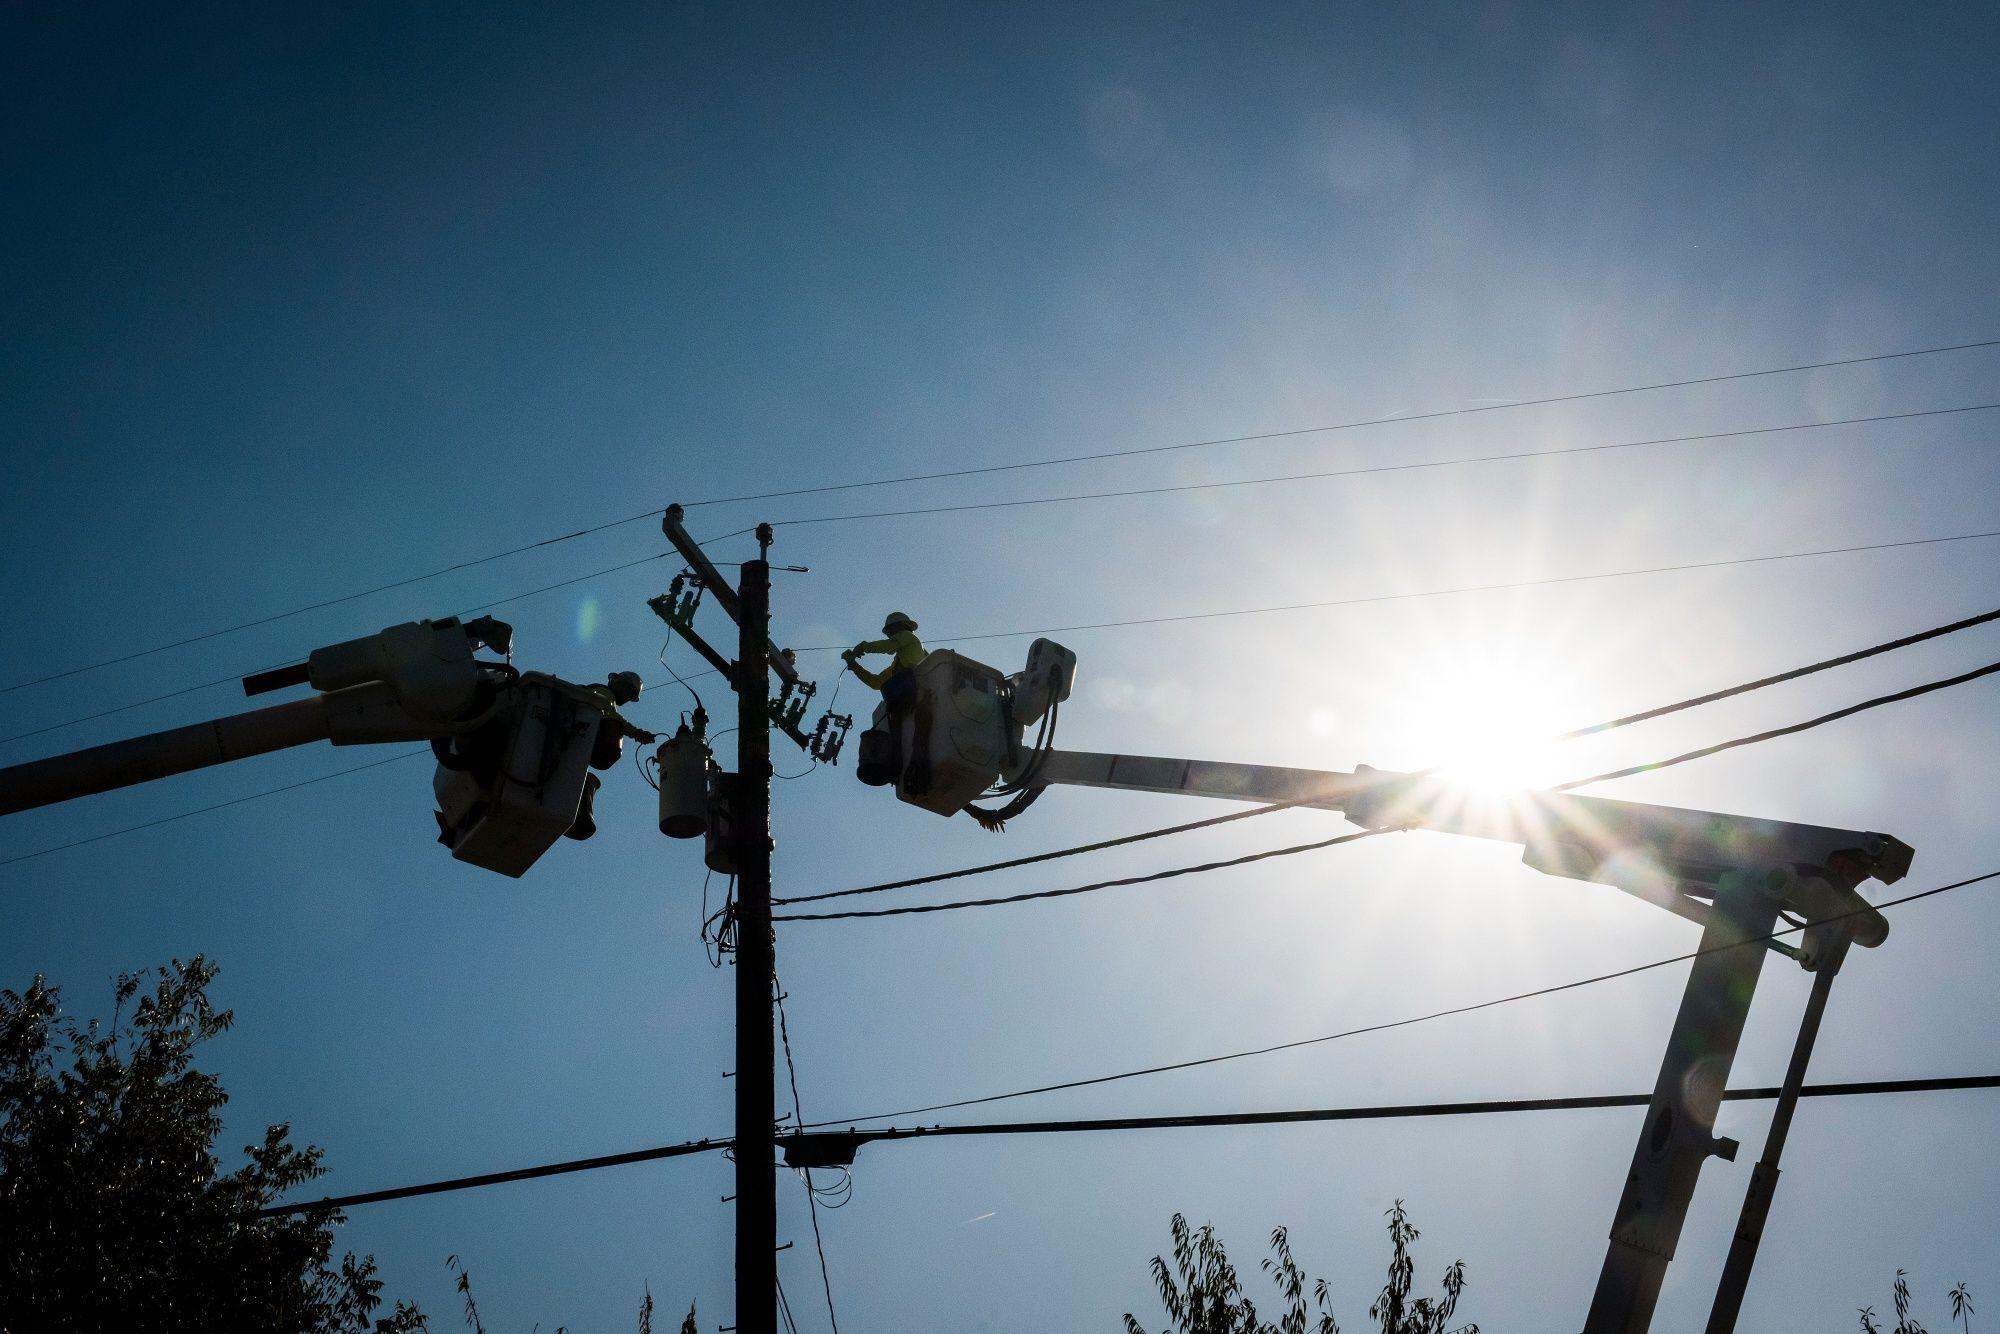 PG&E Warns 800,000 People May Go Dark in This Week's Blackout